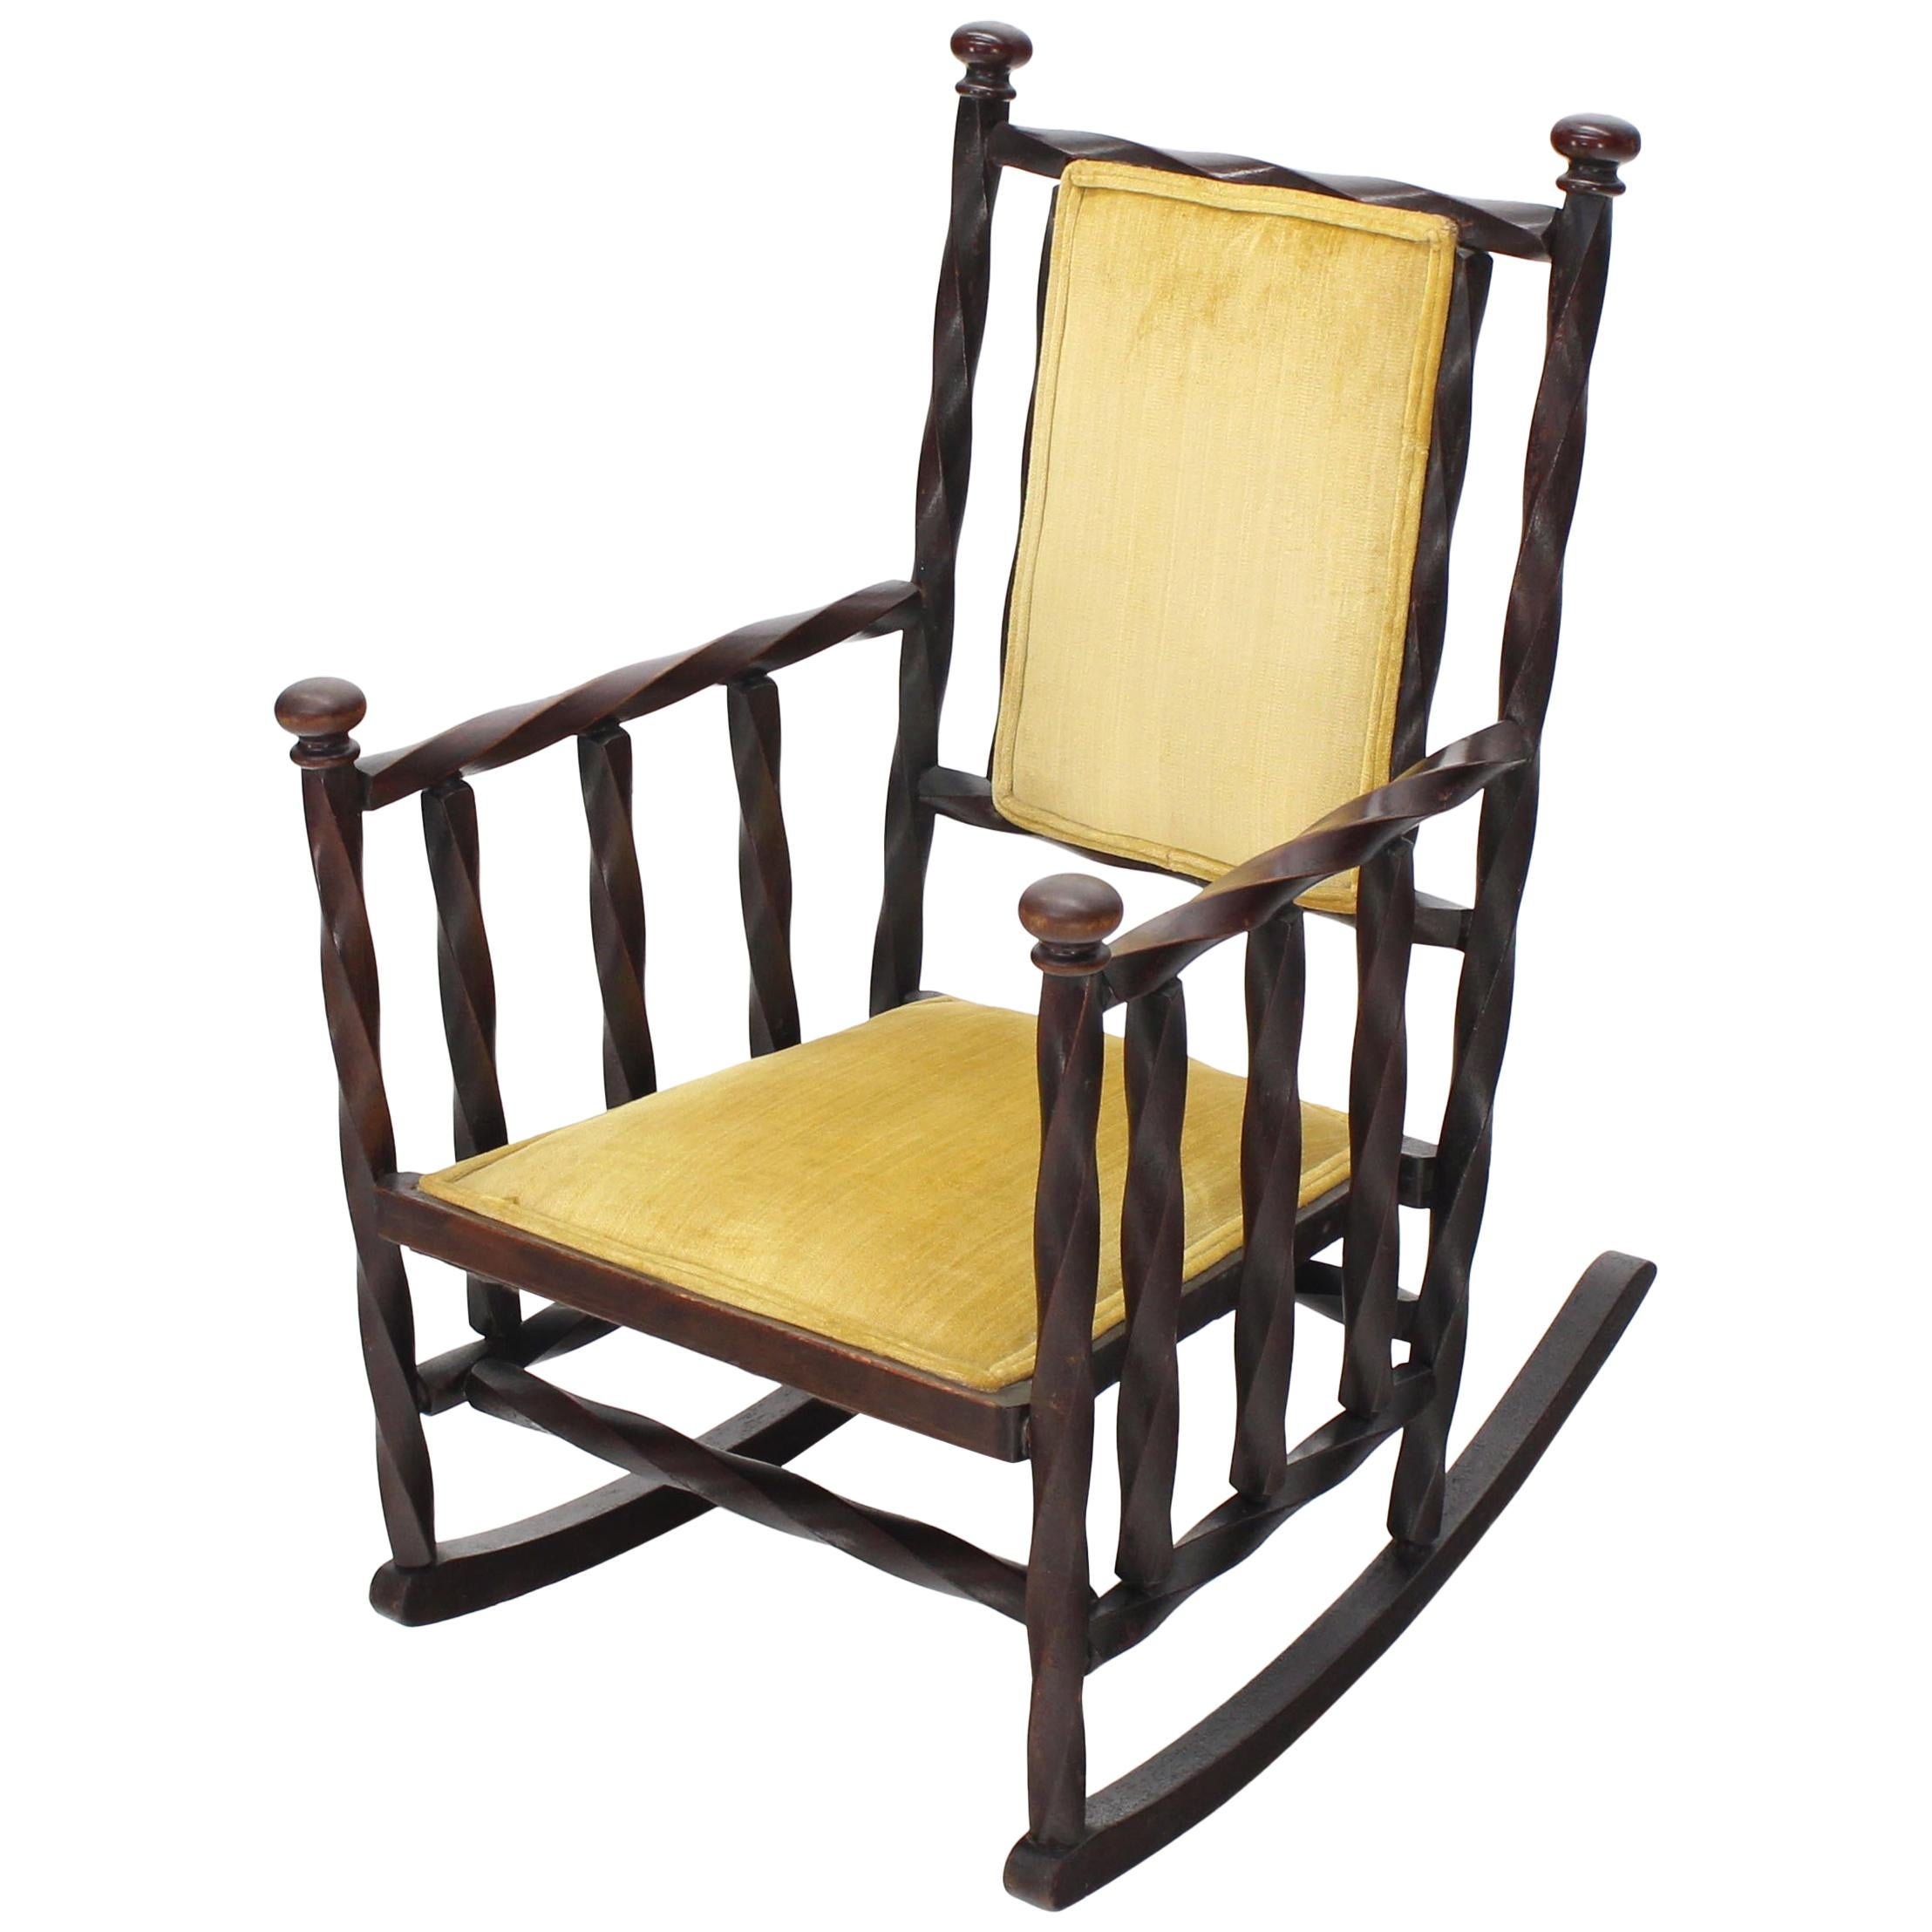 56ef5ab94 J Rusten Studio Crafted Sculptural Modern Rocking Chair In Maple And Walnut